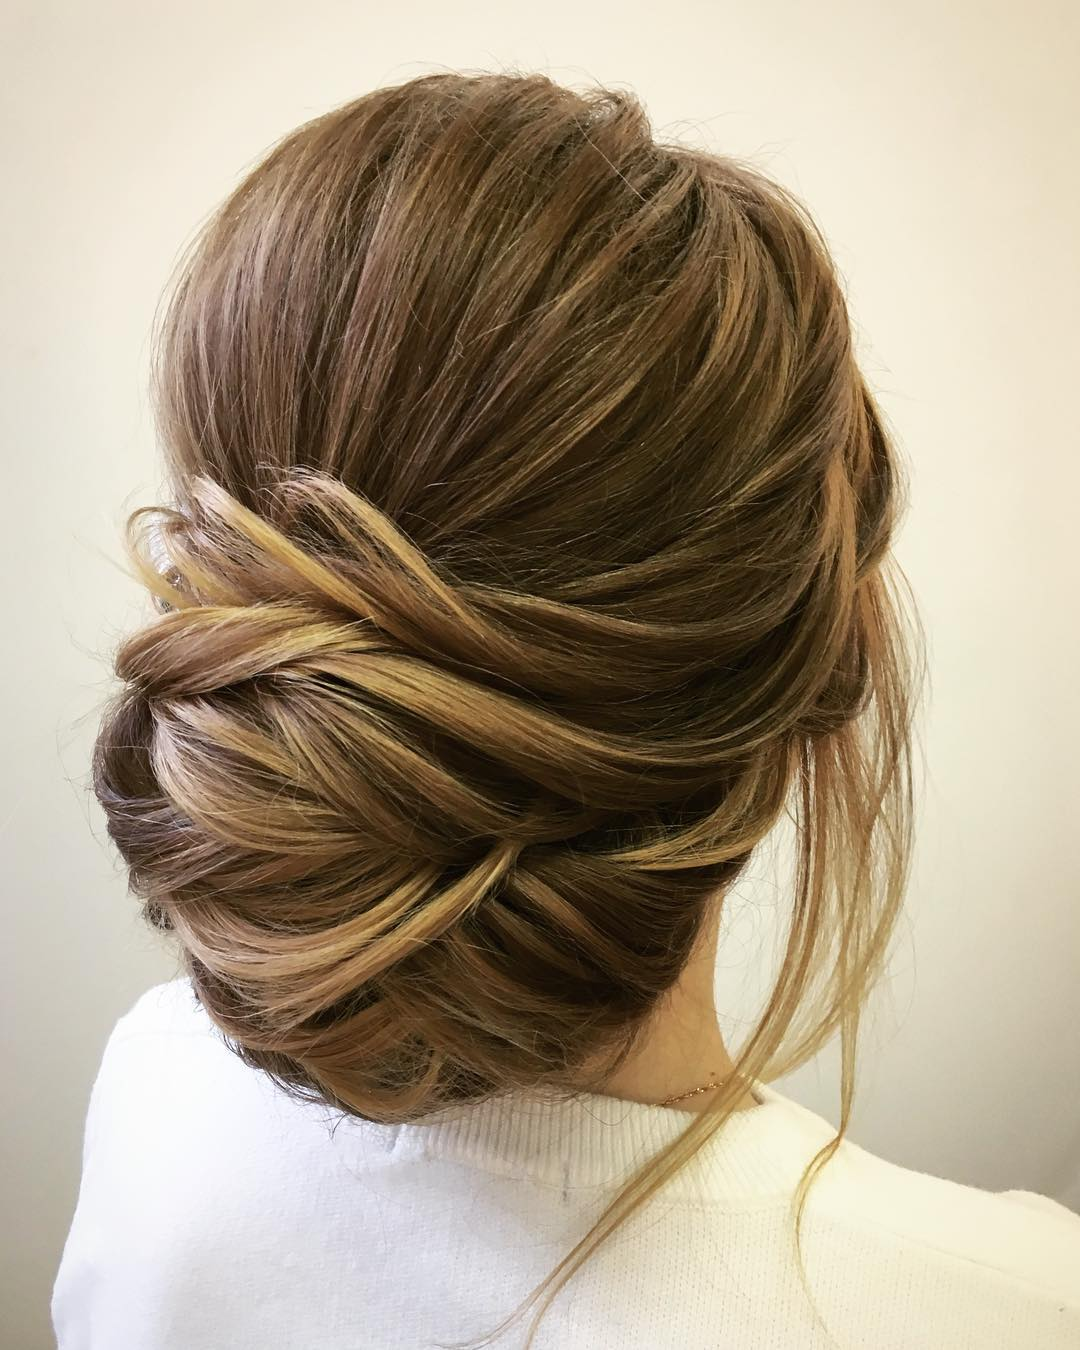 10 Chignon Buns For Every Occasion New Season S Best Buns Health Food Is Medicine